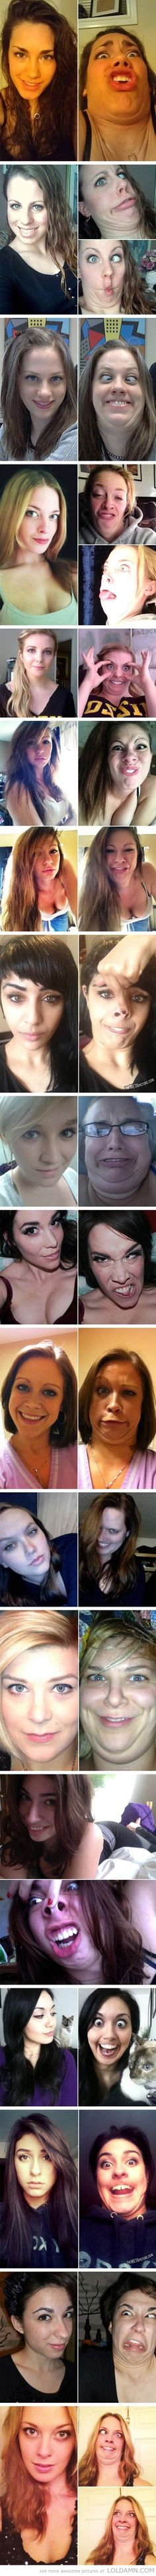 Pretty girls, ugly faces. This is one of the greatest things I have seen. I just had to pin.